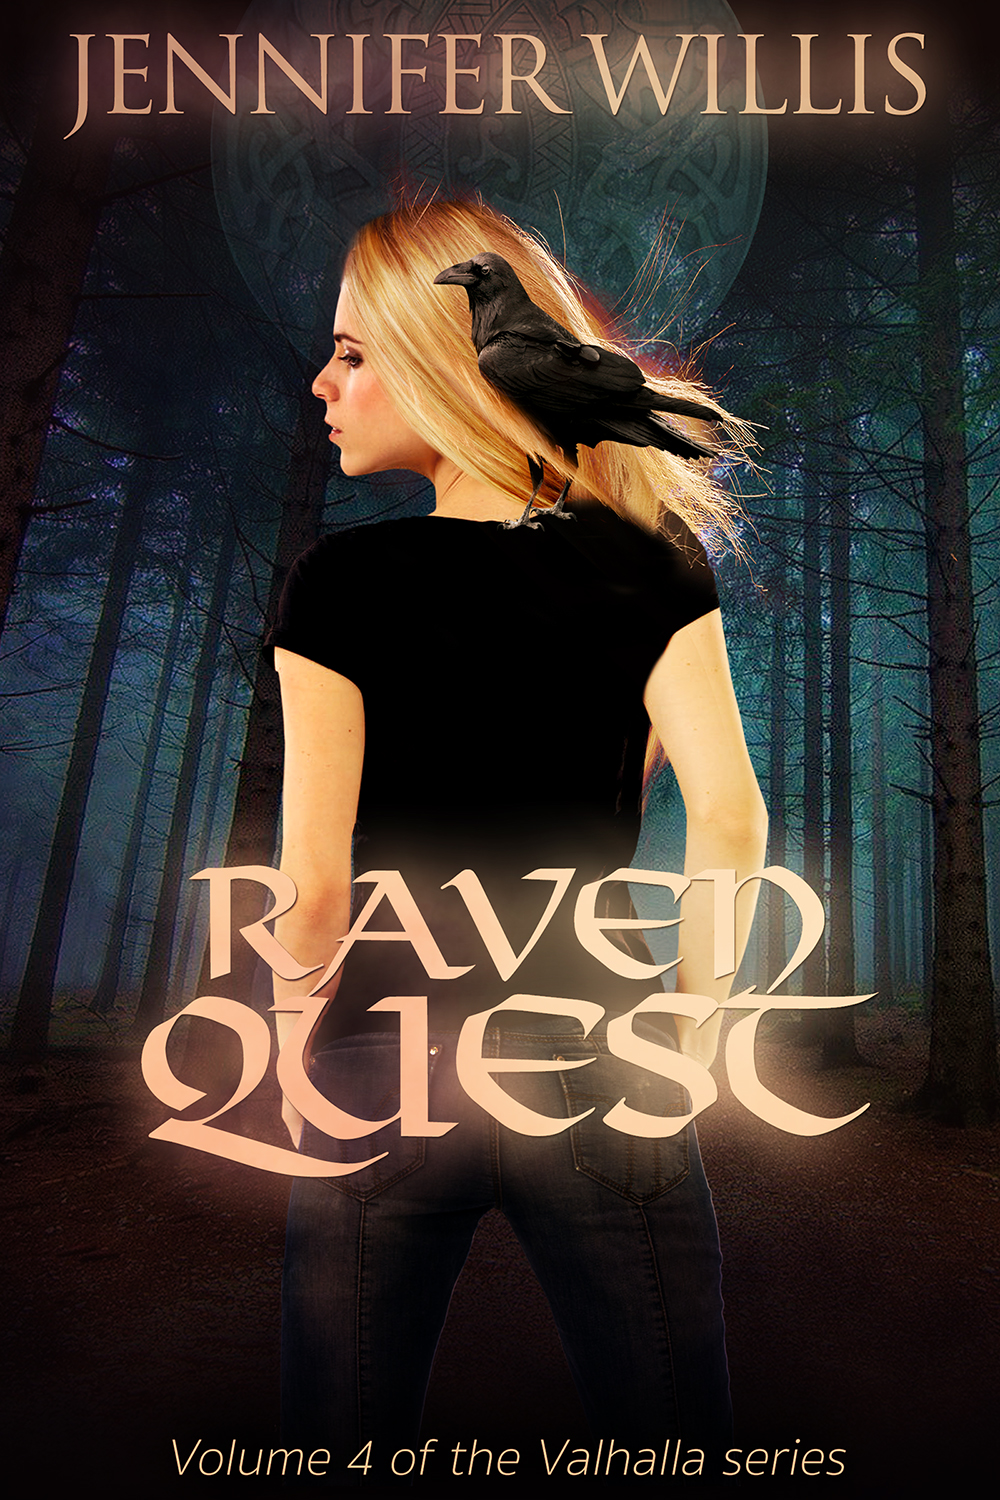 Raven Quest (Valhalla: Book 4) by Jennifer Willis